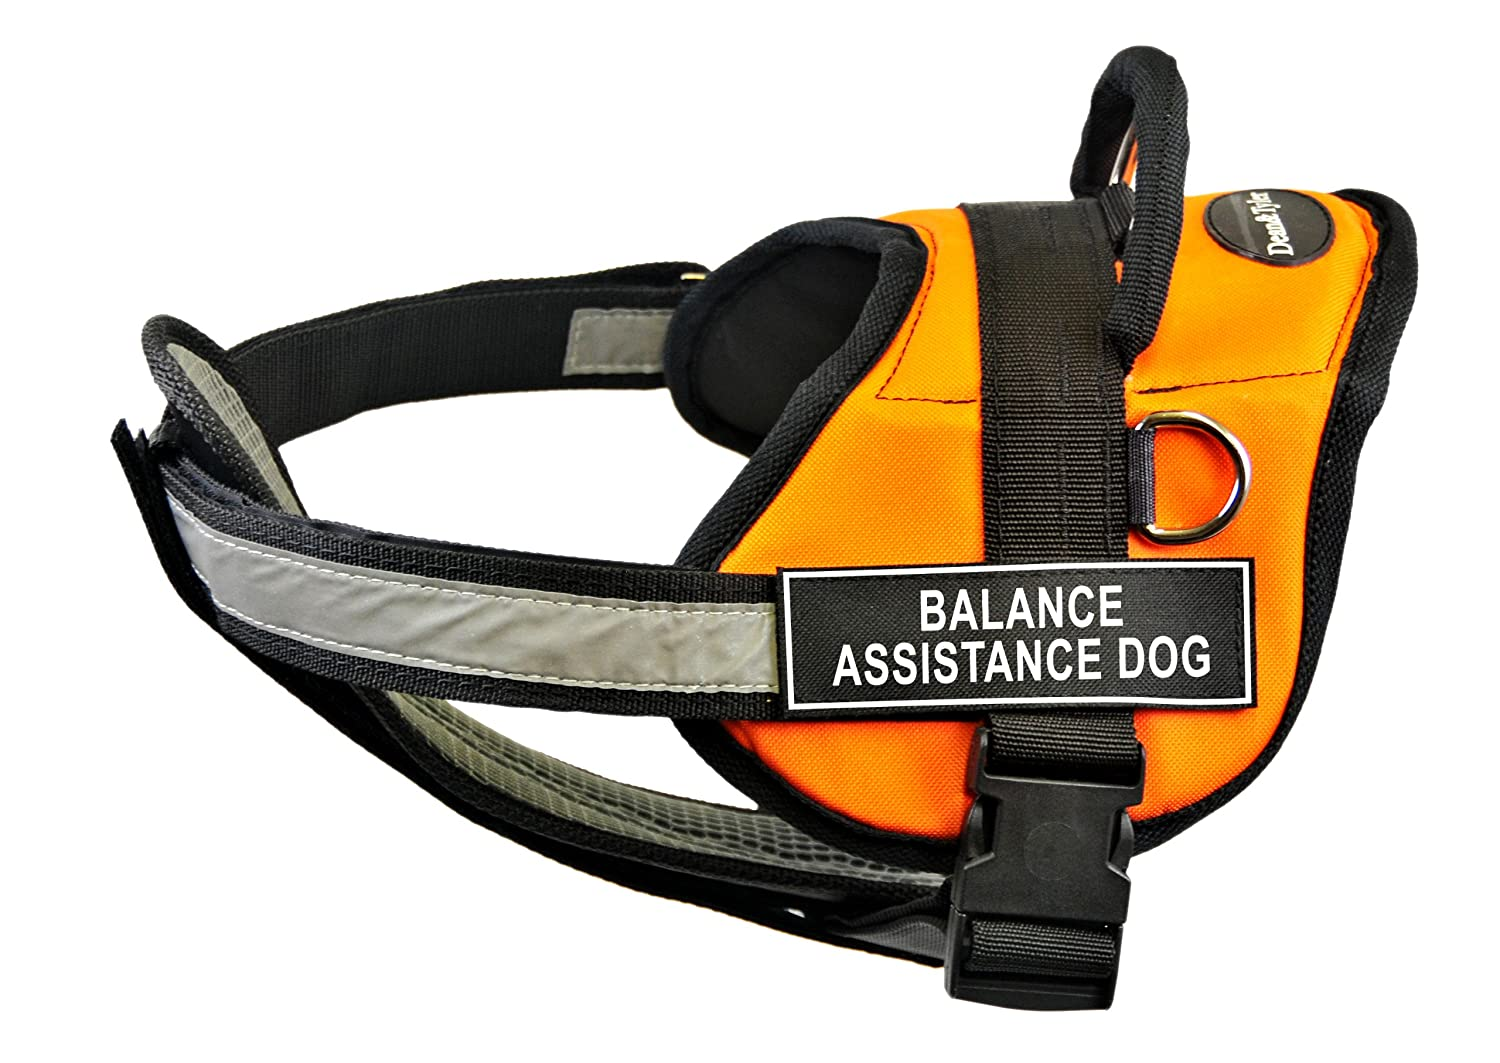 Dean & Tyler 25-Inch to 34-Inch Balance Assistance Dog Harness with Padded Reflective Chest Straps, Small, orange Black